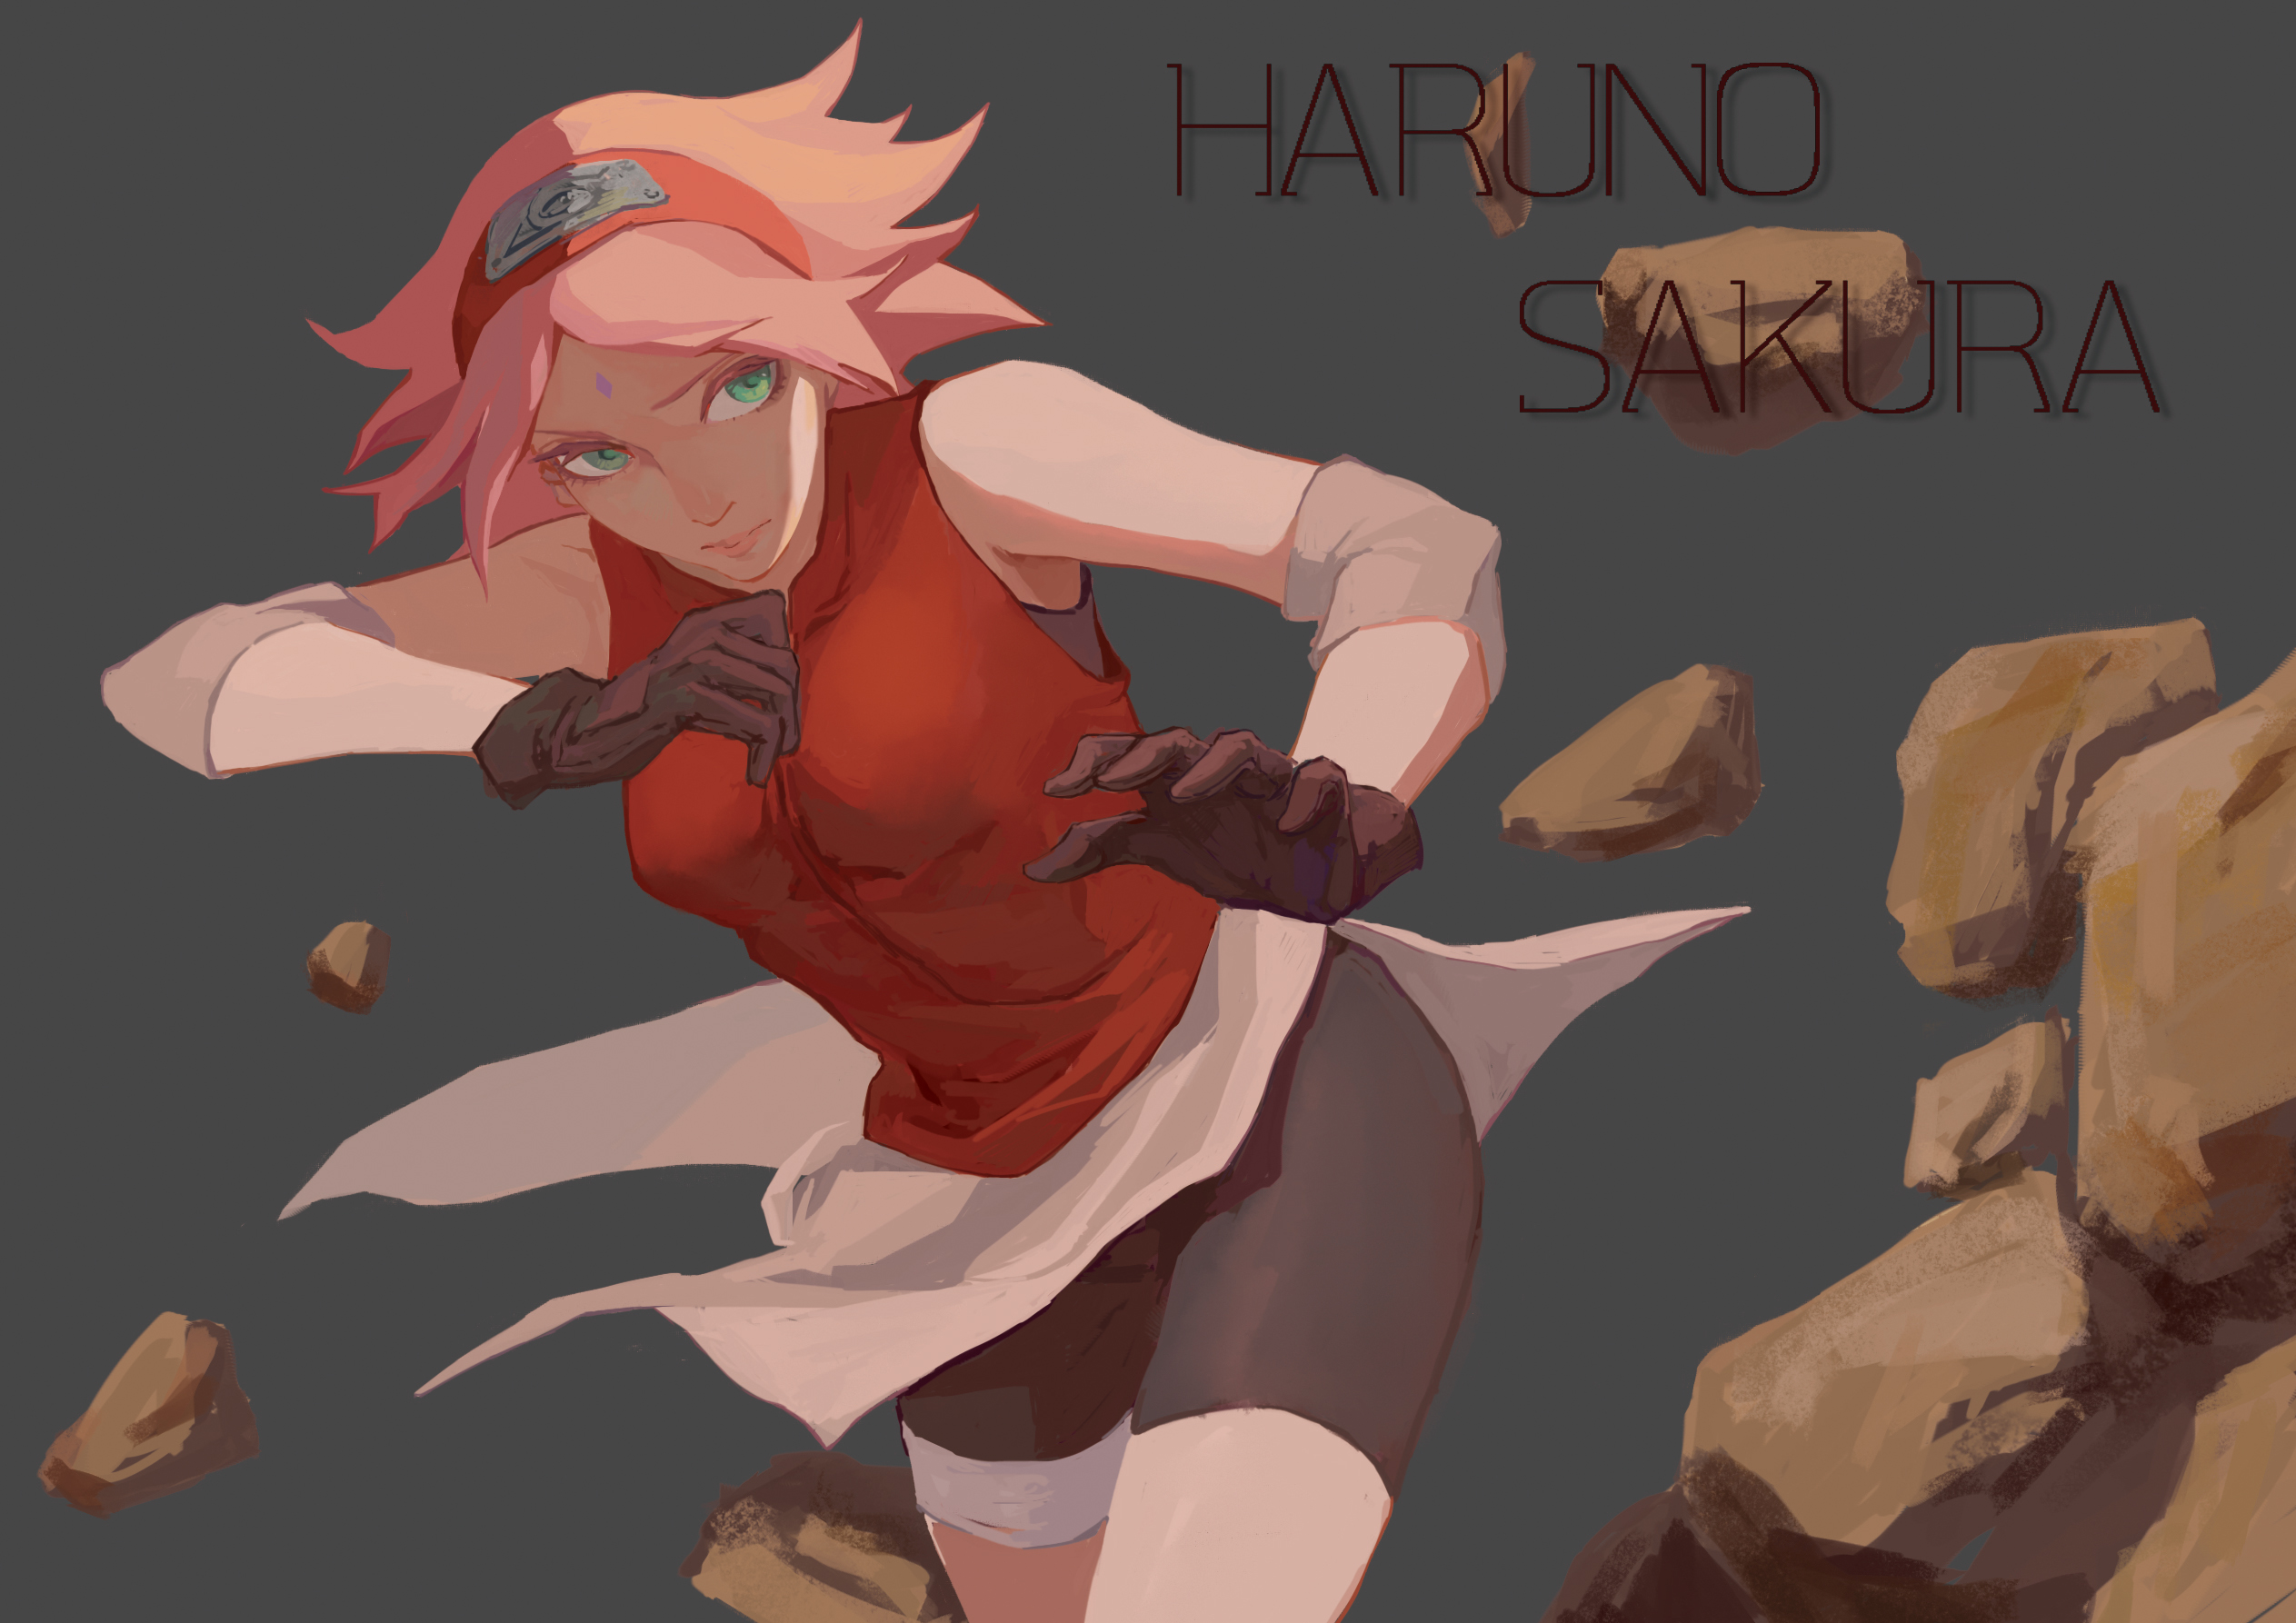 Looks like sakura haruno pictures lisa